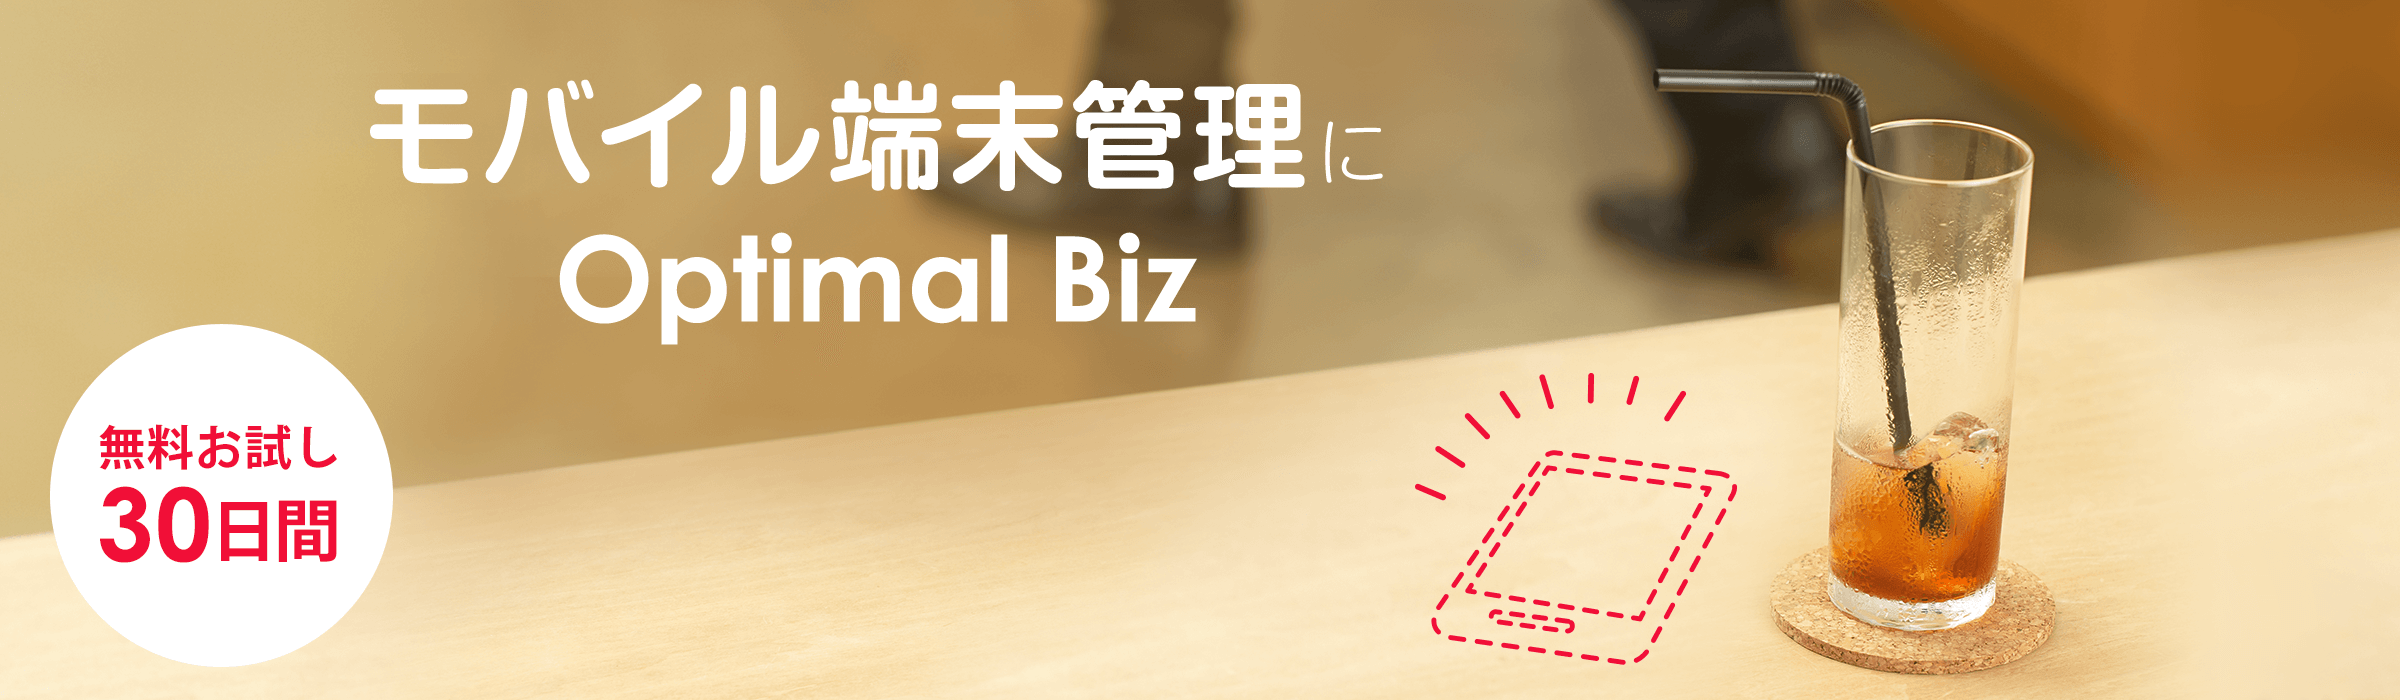 MDM「Optimal Biz」